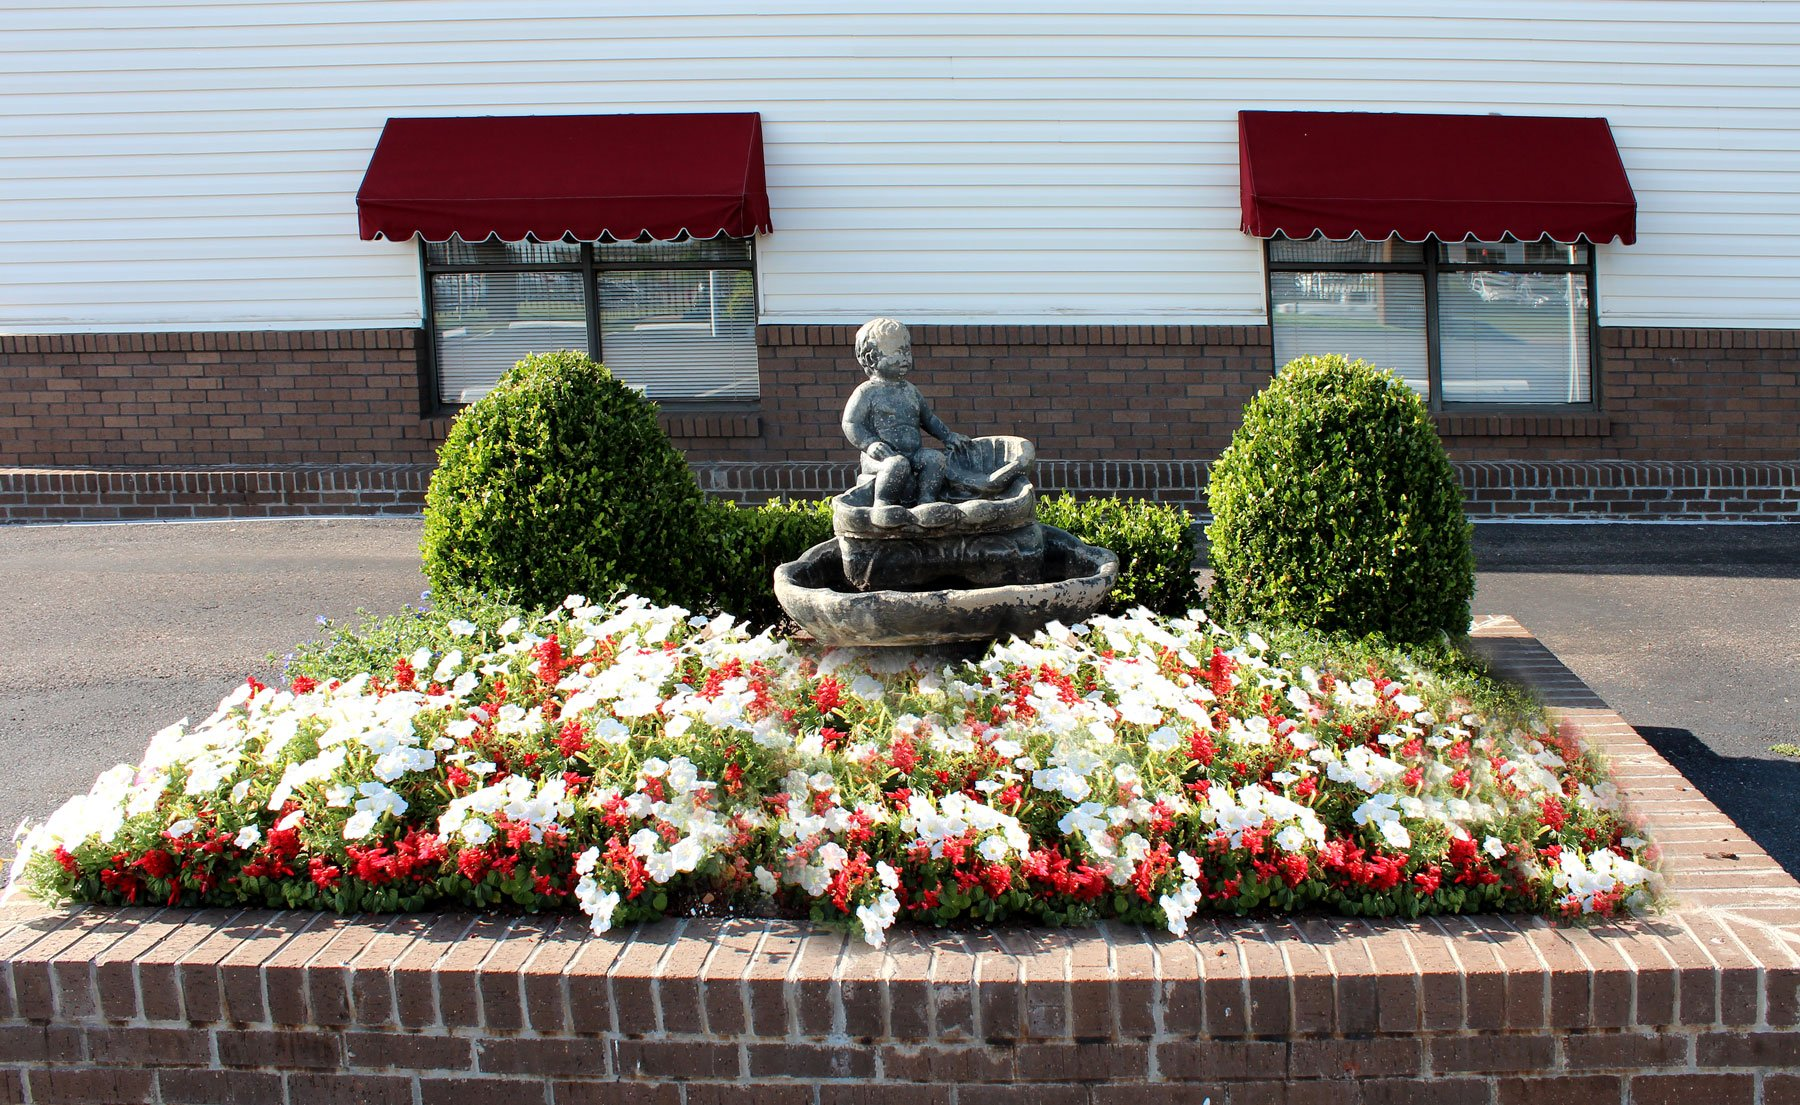 Fountain Twin Oaks Memorial Gardens Funeral Home